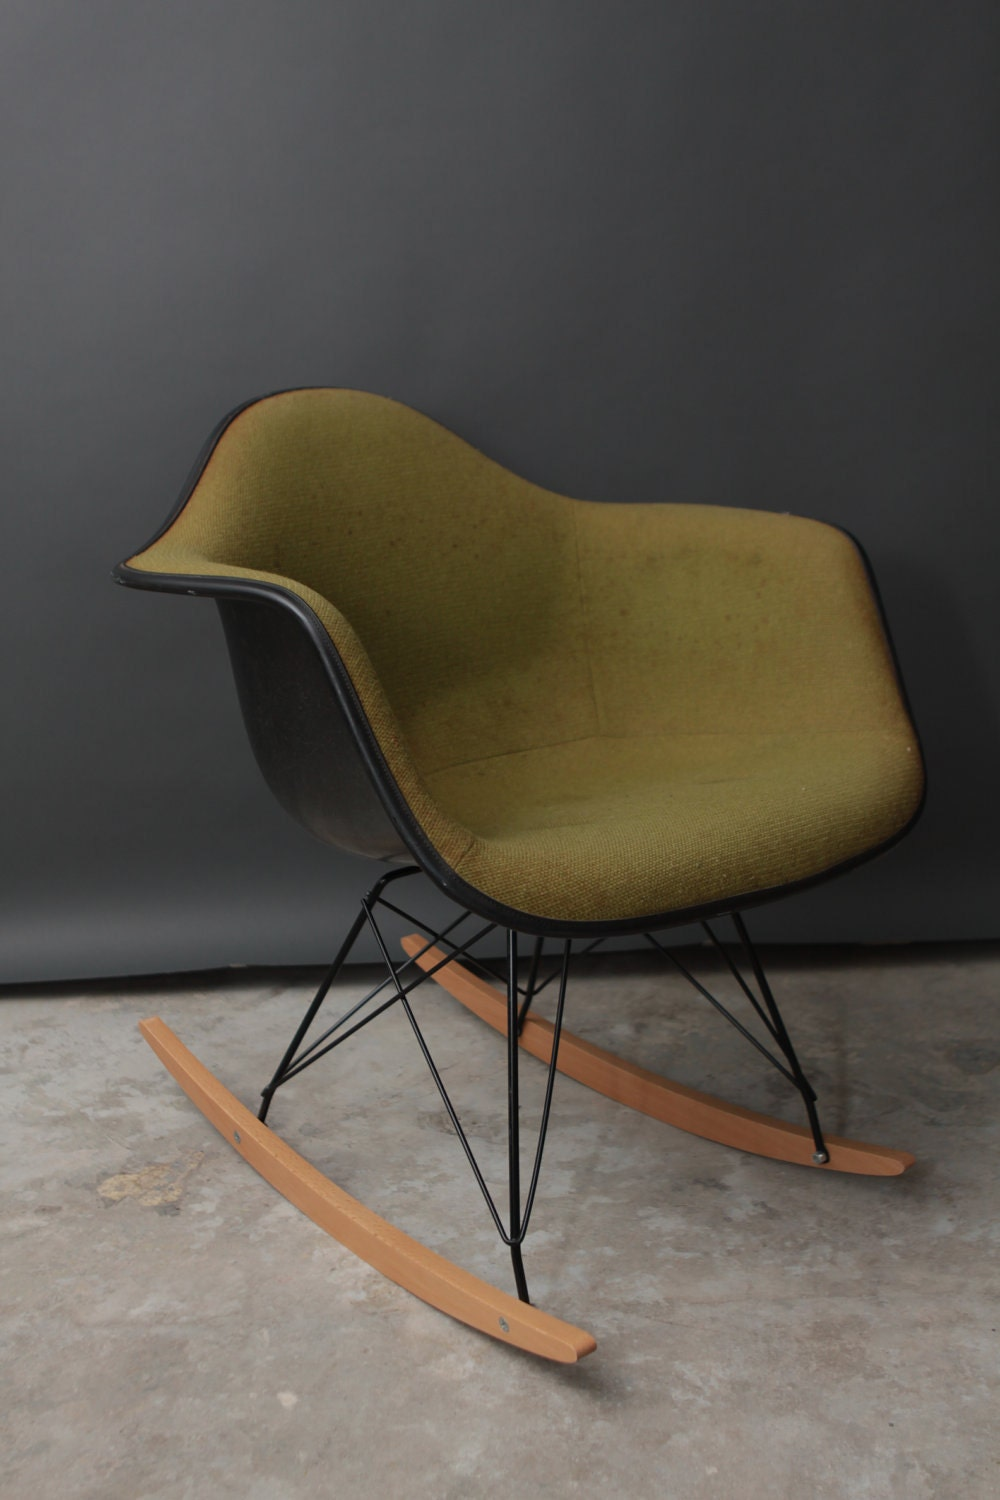 Vintage herman miller eames fabric rocking chair by thedriftingfox - Eames chair herman miller ...